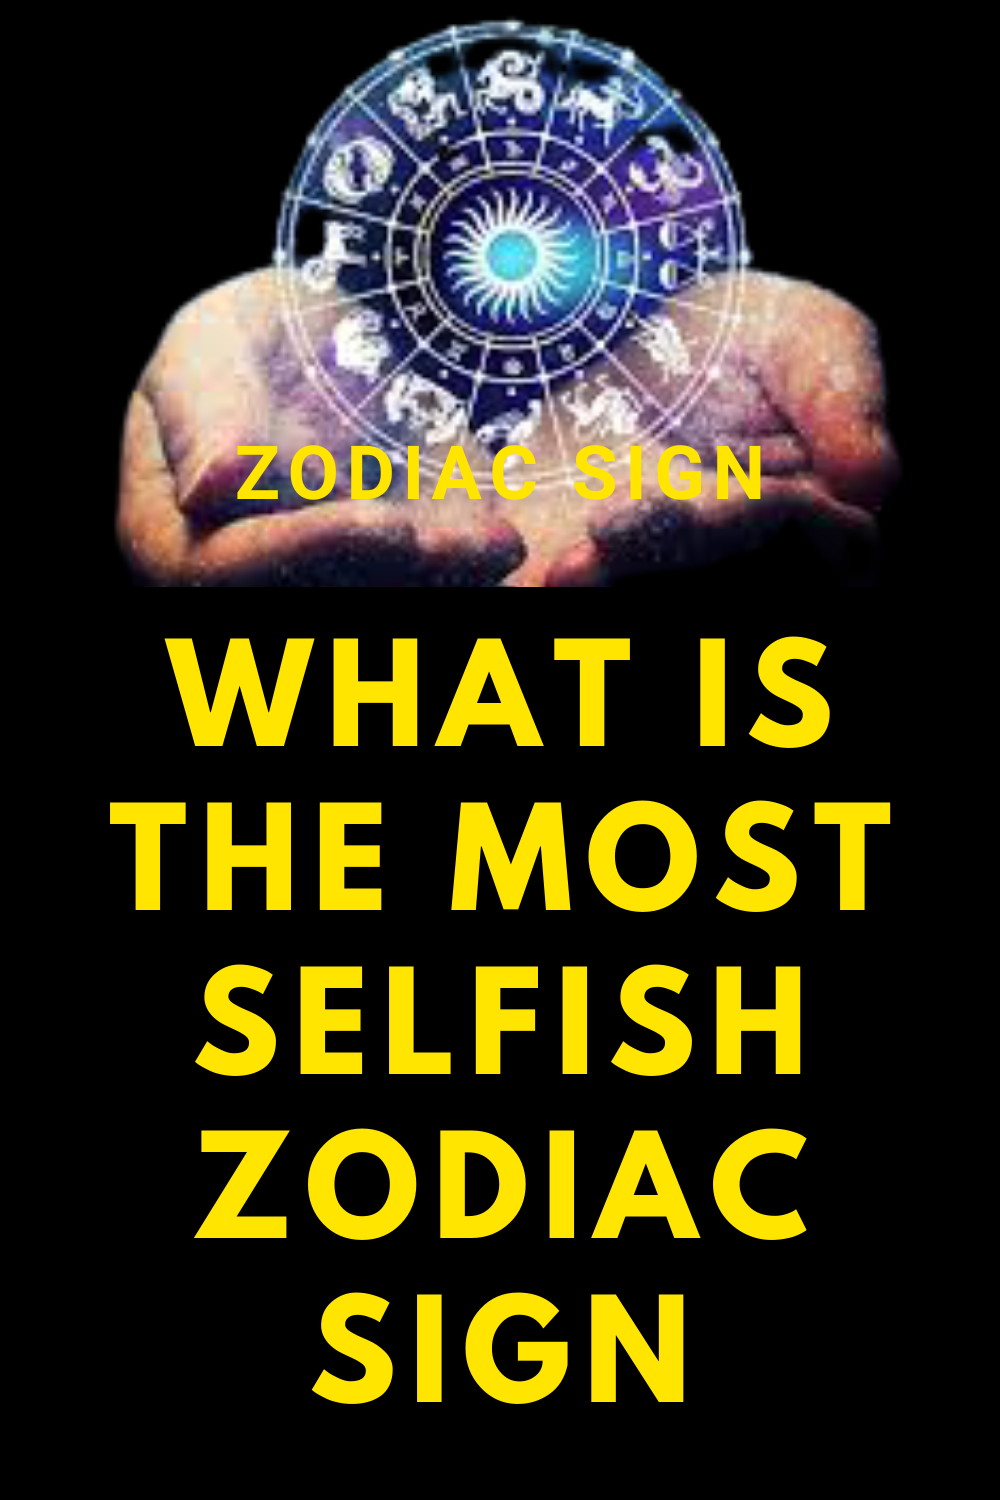 What is the most selfish zodiac sign